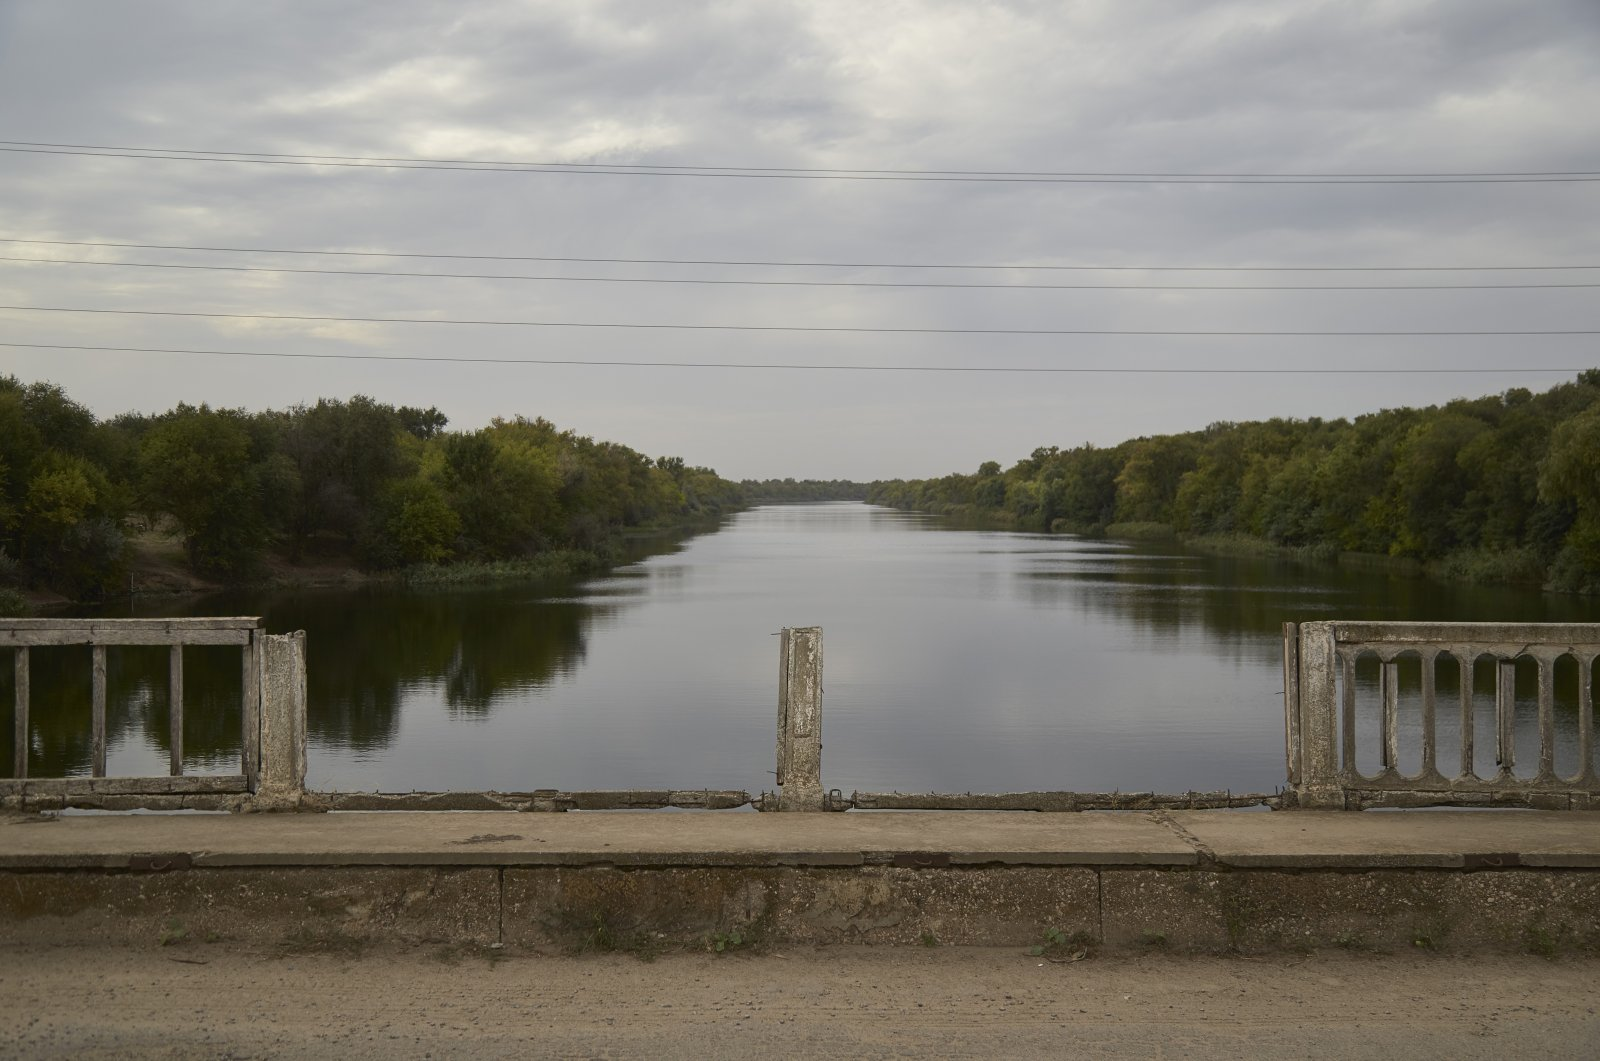 A bridge on the North Crimean Canal, in Kalanchak, Ukraine, Sept. 29, 2020. (Photo by Getty Images)